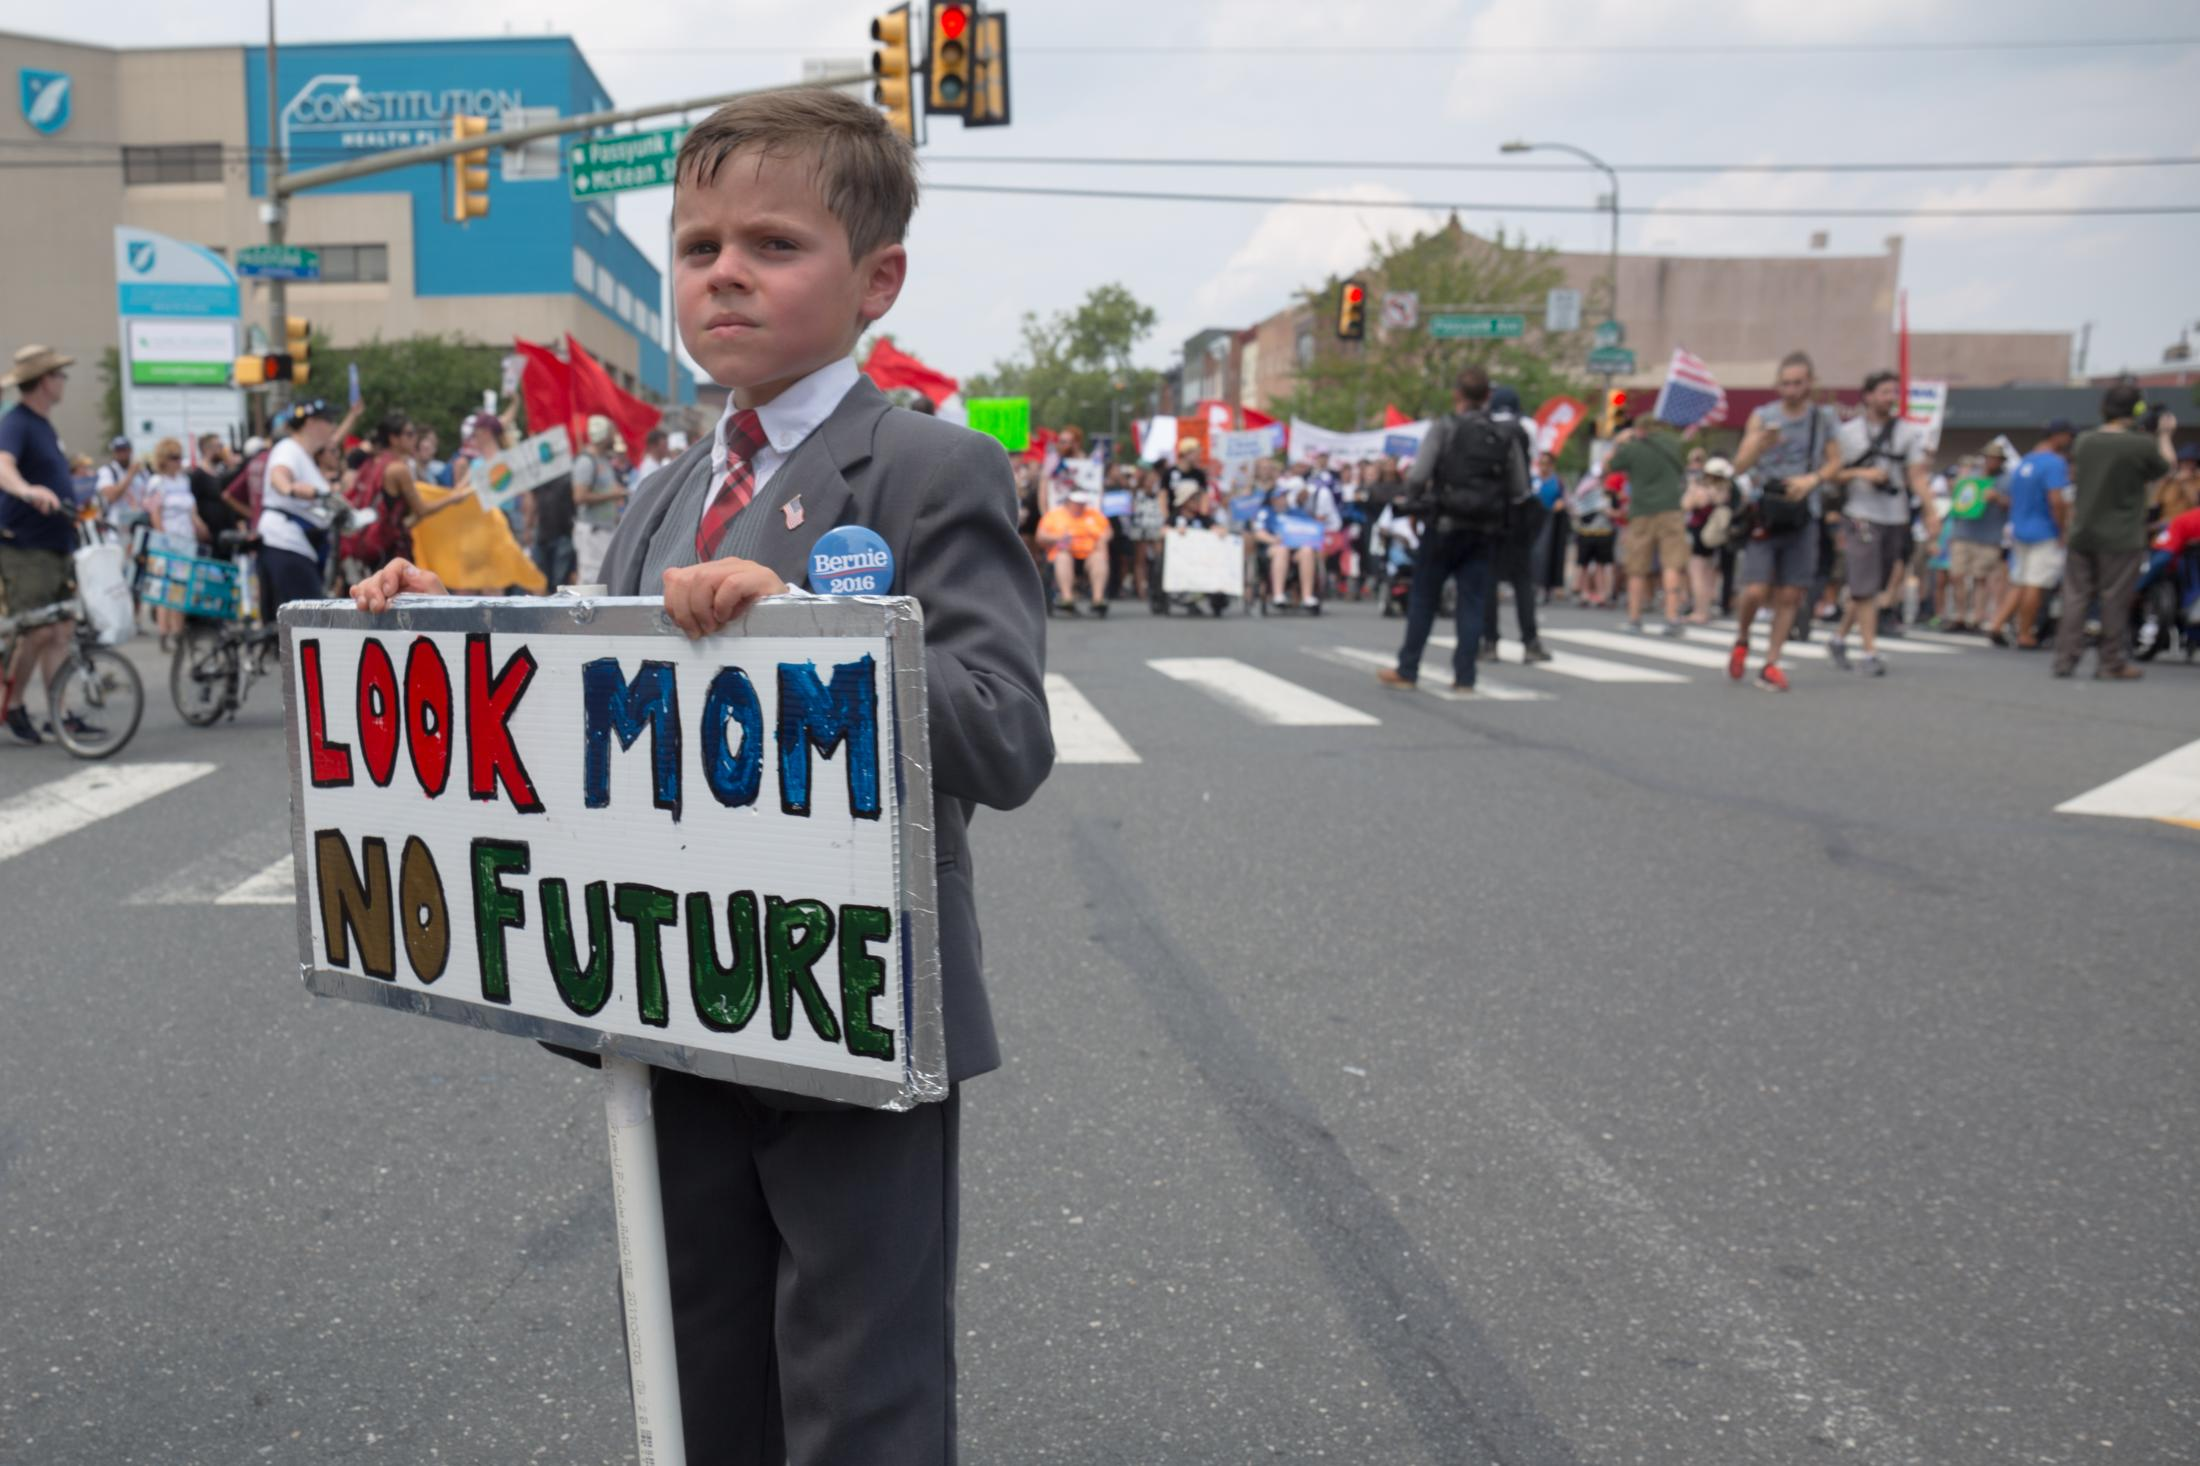 A boy in a suit holds a sign during a march on Broad Street in towards the Wells Fargo Center in Philadelphia, PA during the Democratic National Convention on July 26, 2016.